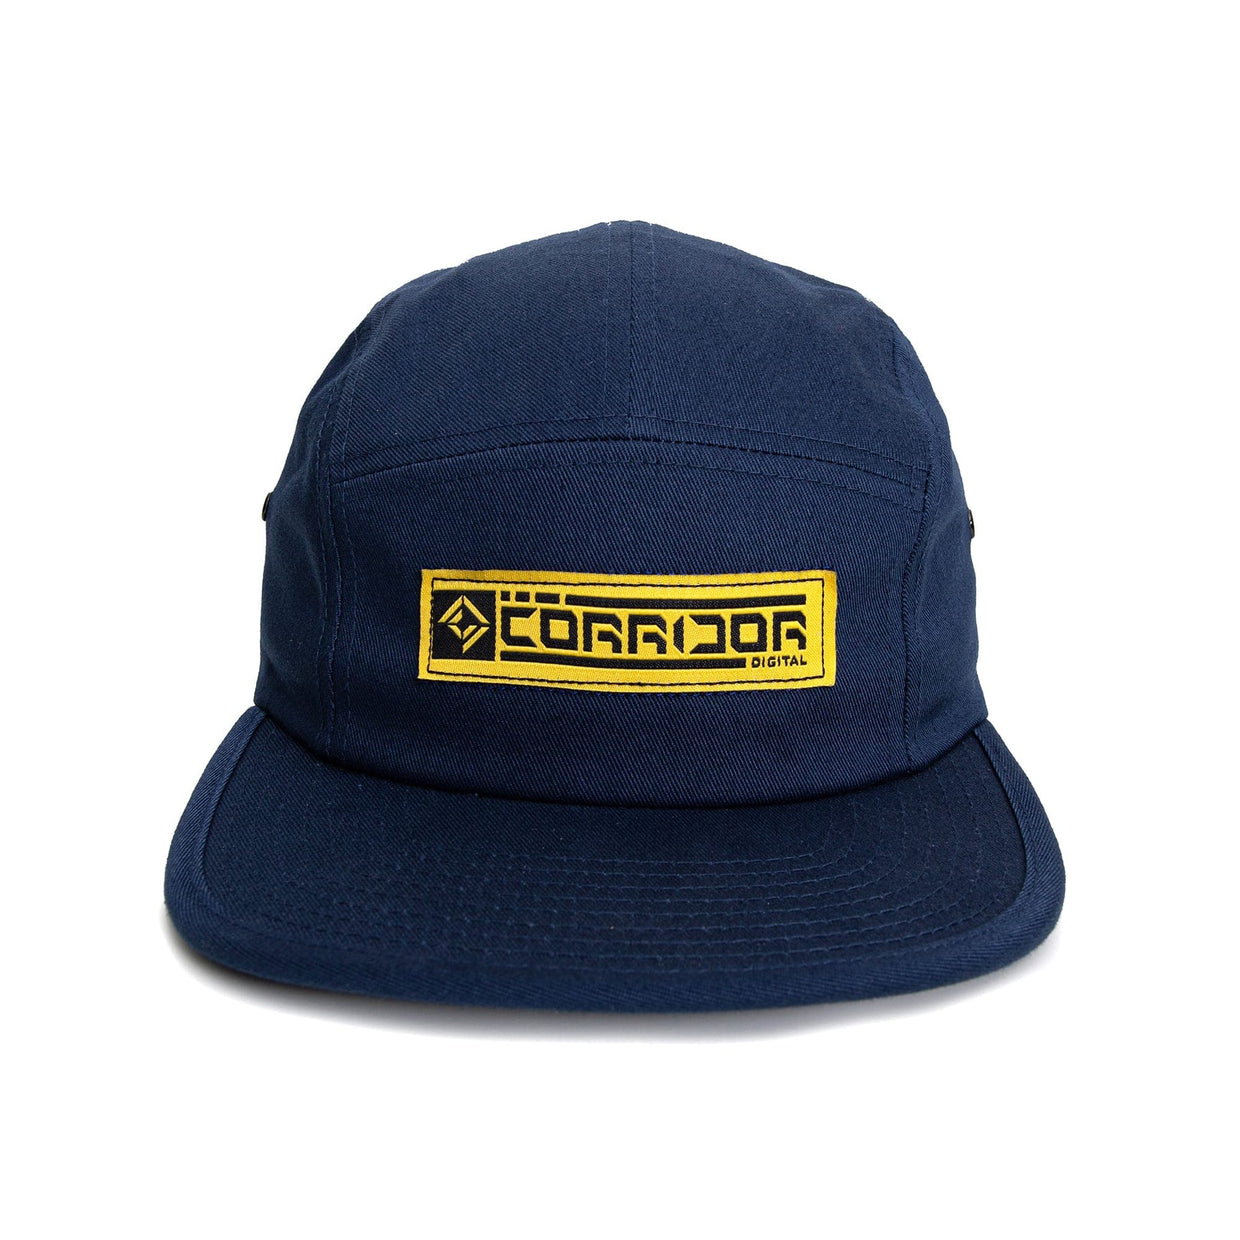 Corridor Digital 5-Panel Camper Hat